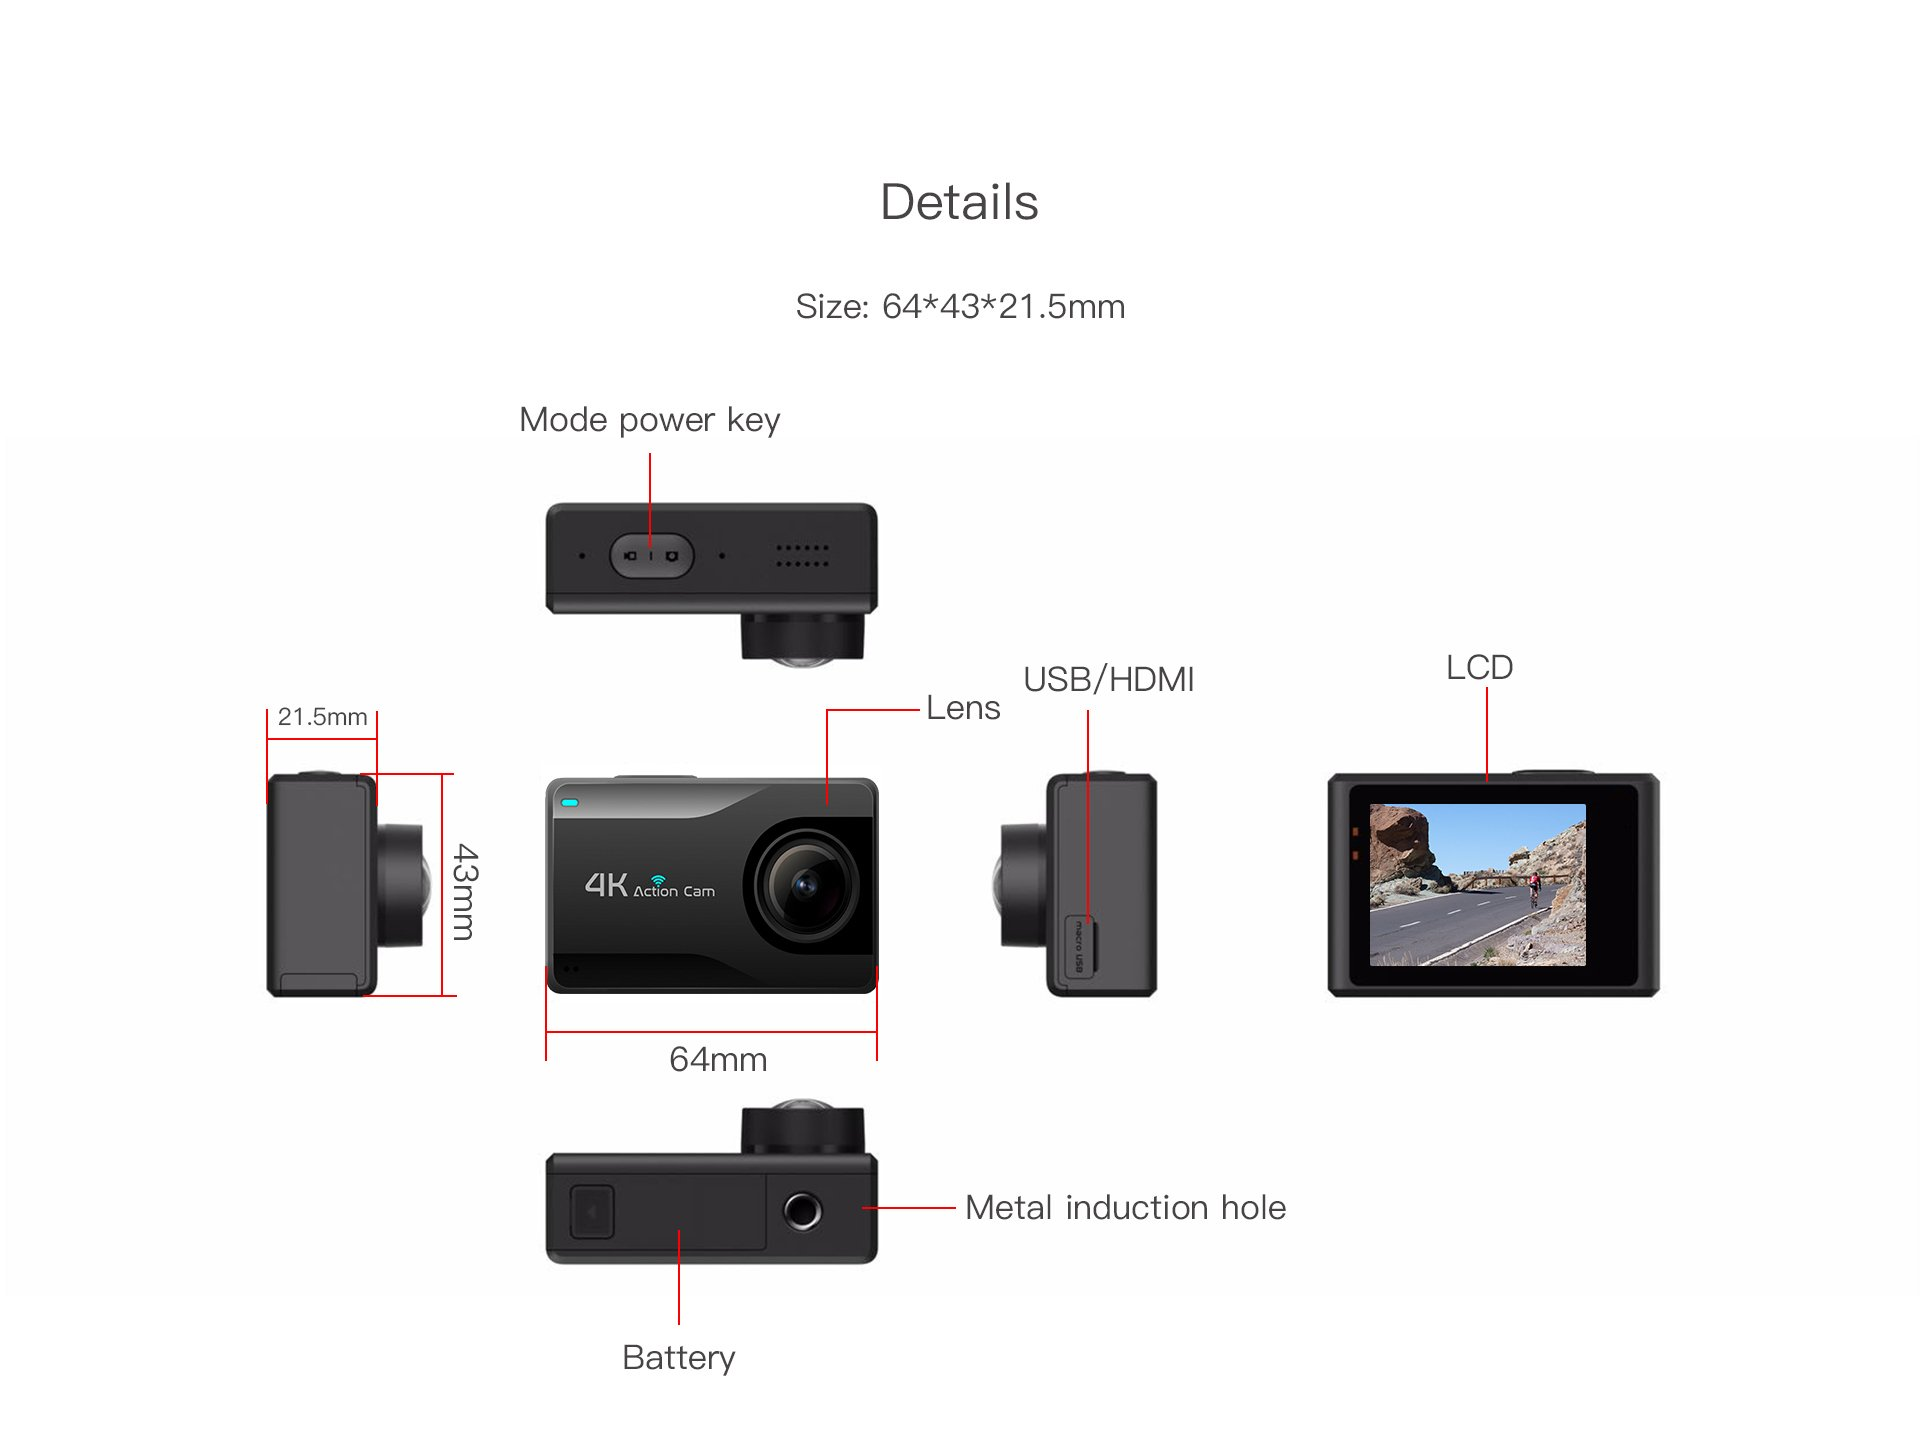 B1KS+ HiSilicon 4K Action Camera Details